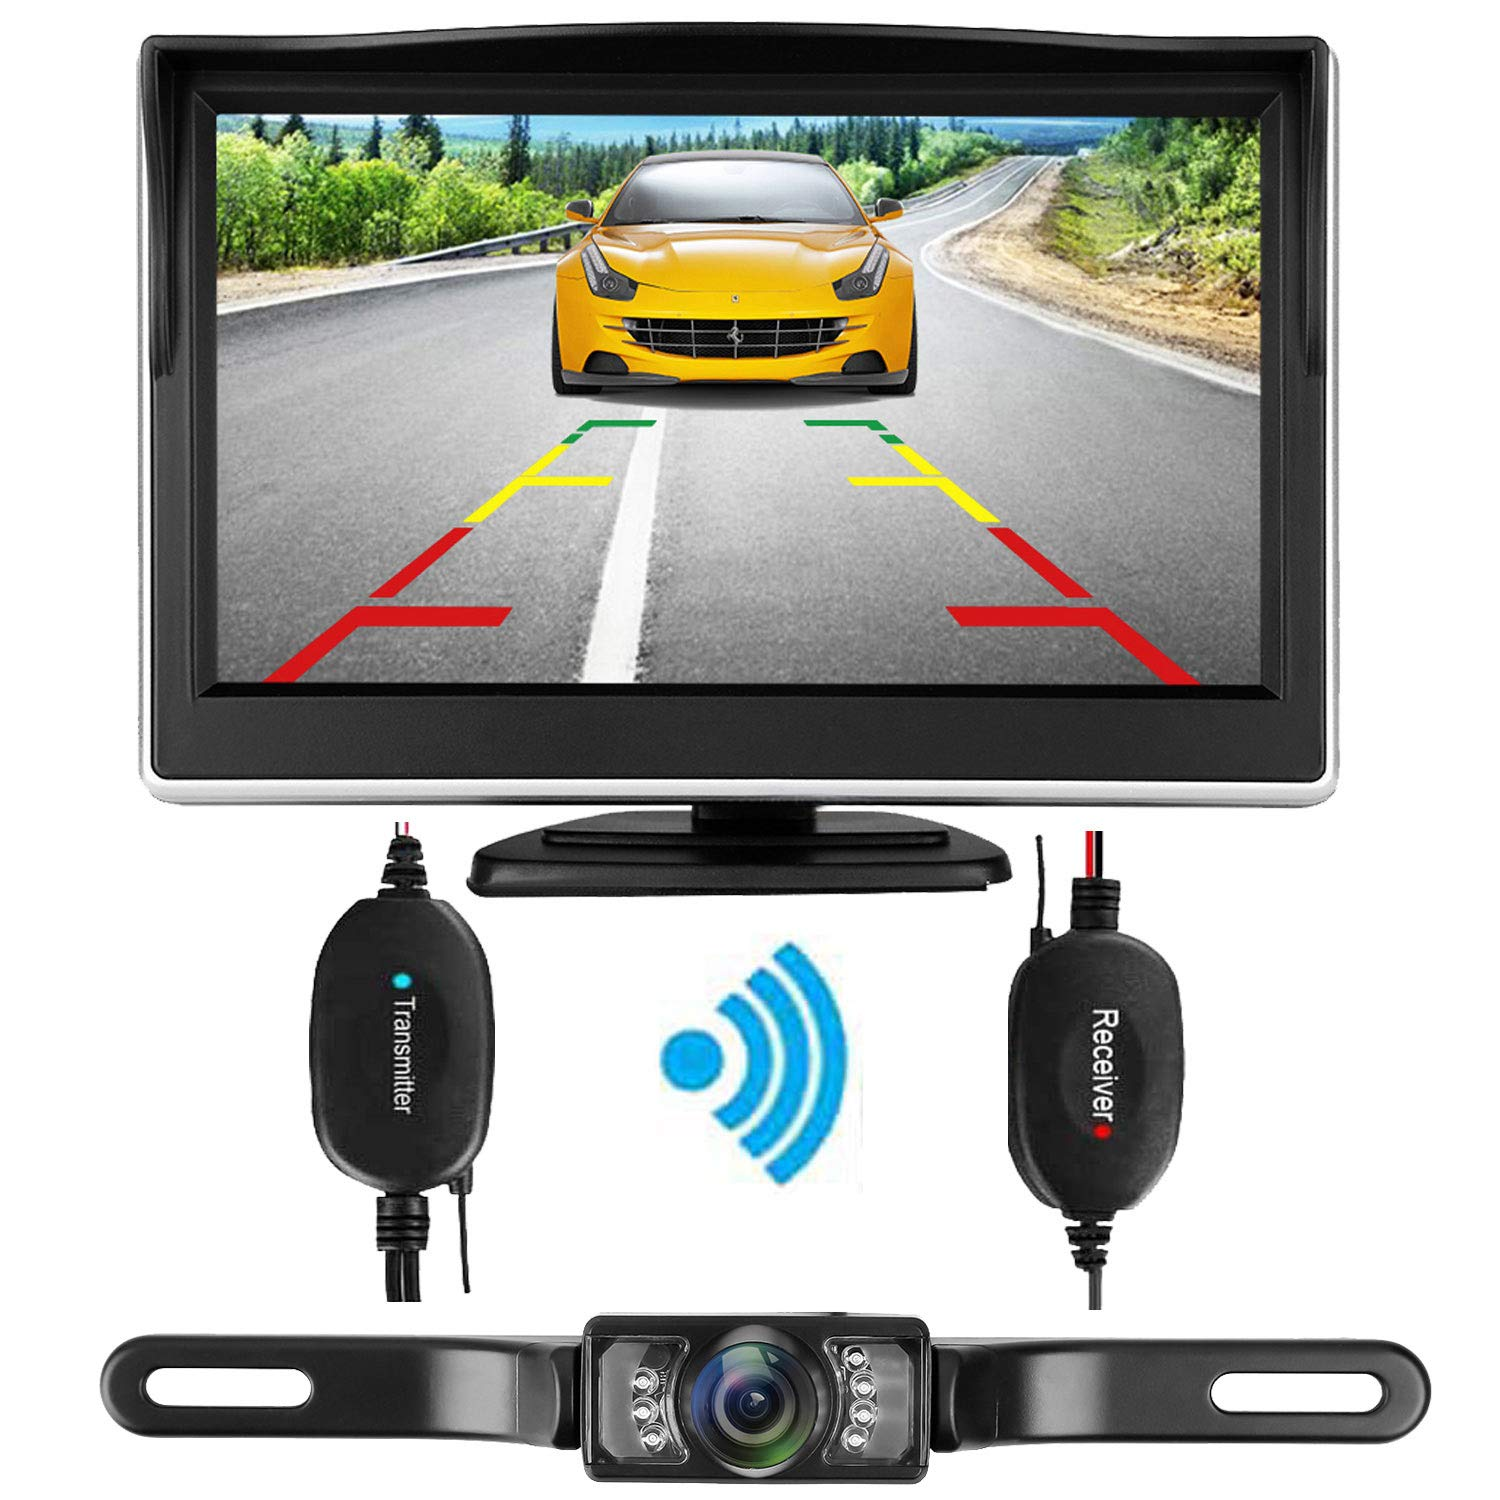 iStrong Backup Camera Wireless 4.3 Monitor Kit for Car//SUV//Van Waterproof License Plate Rear View //Front View Camera 7 LED IR Night Vision Guide Lines ON//OFF